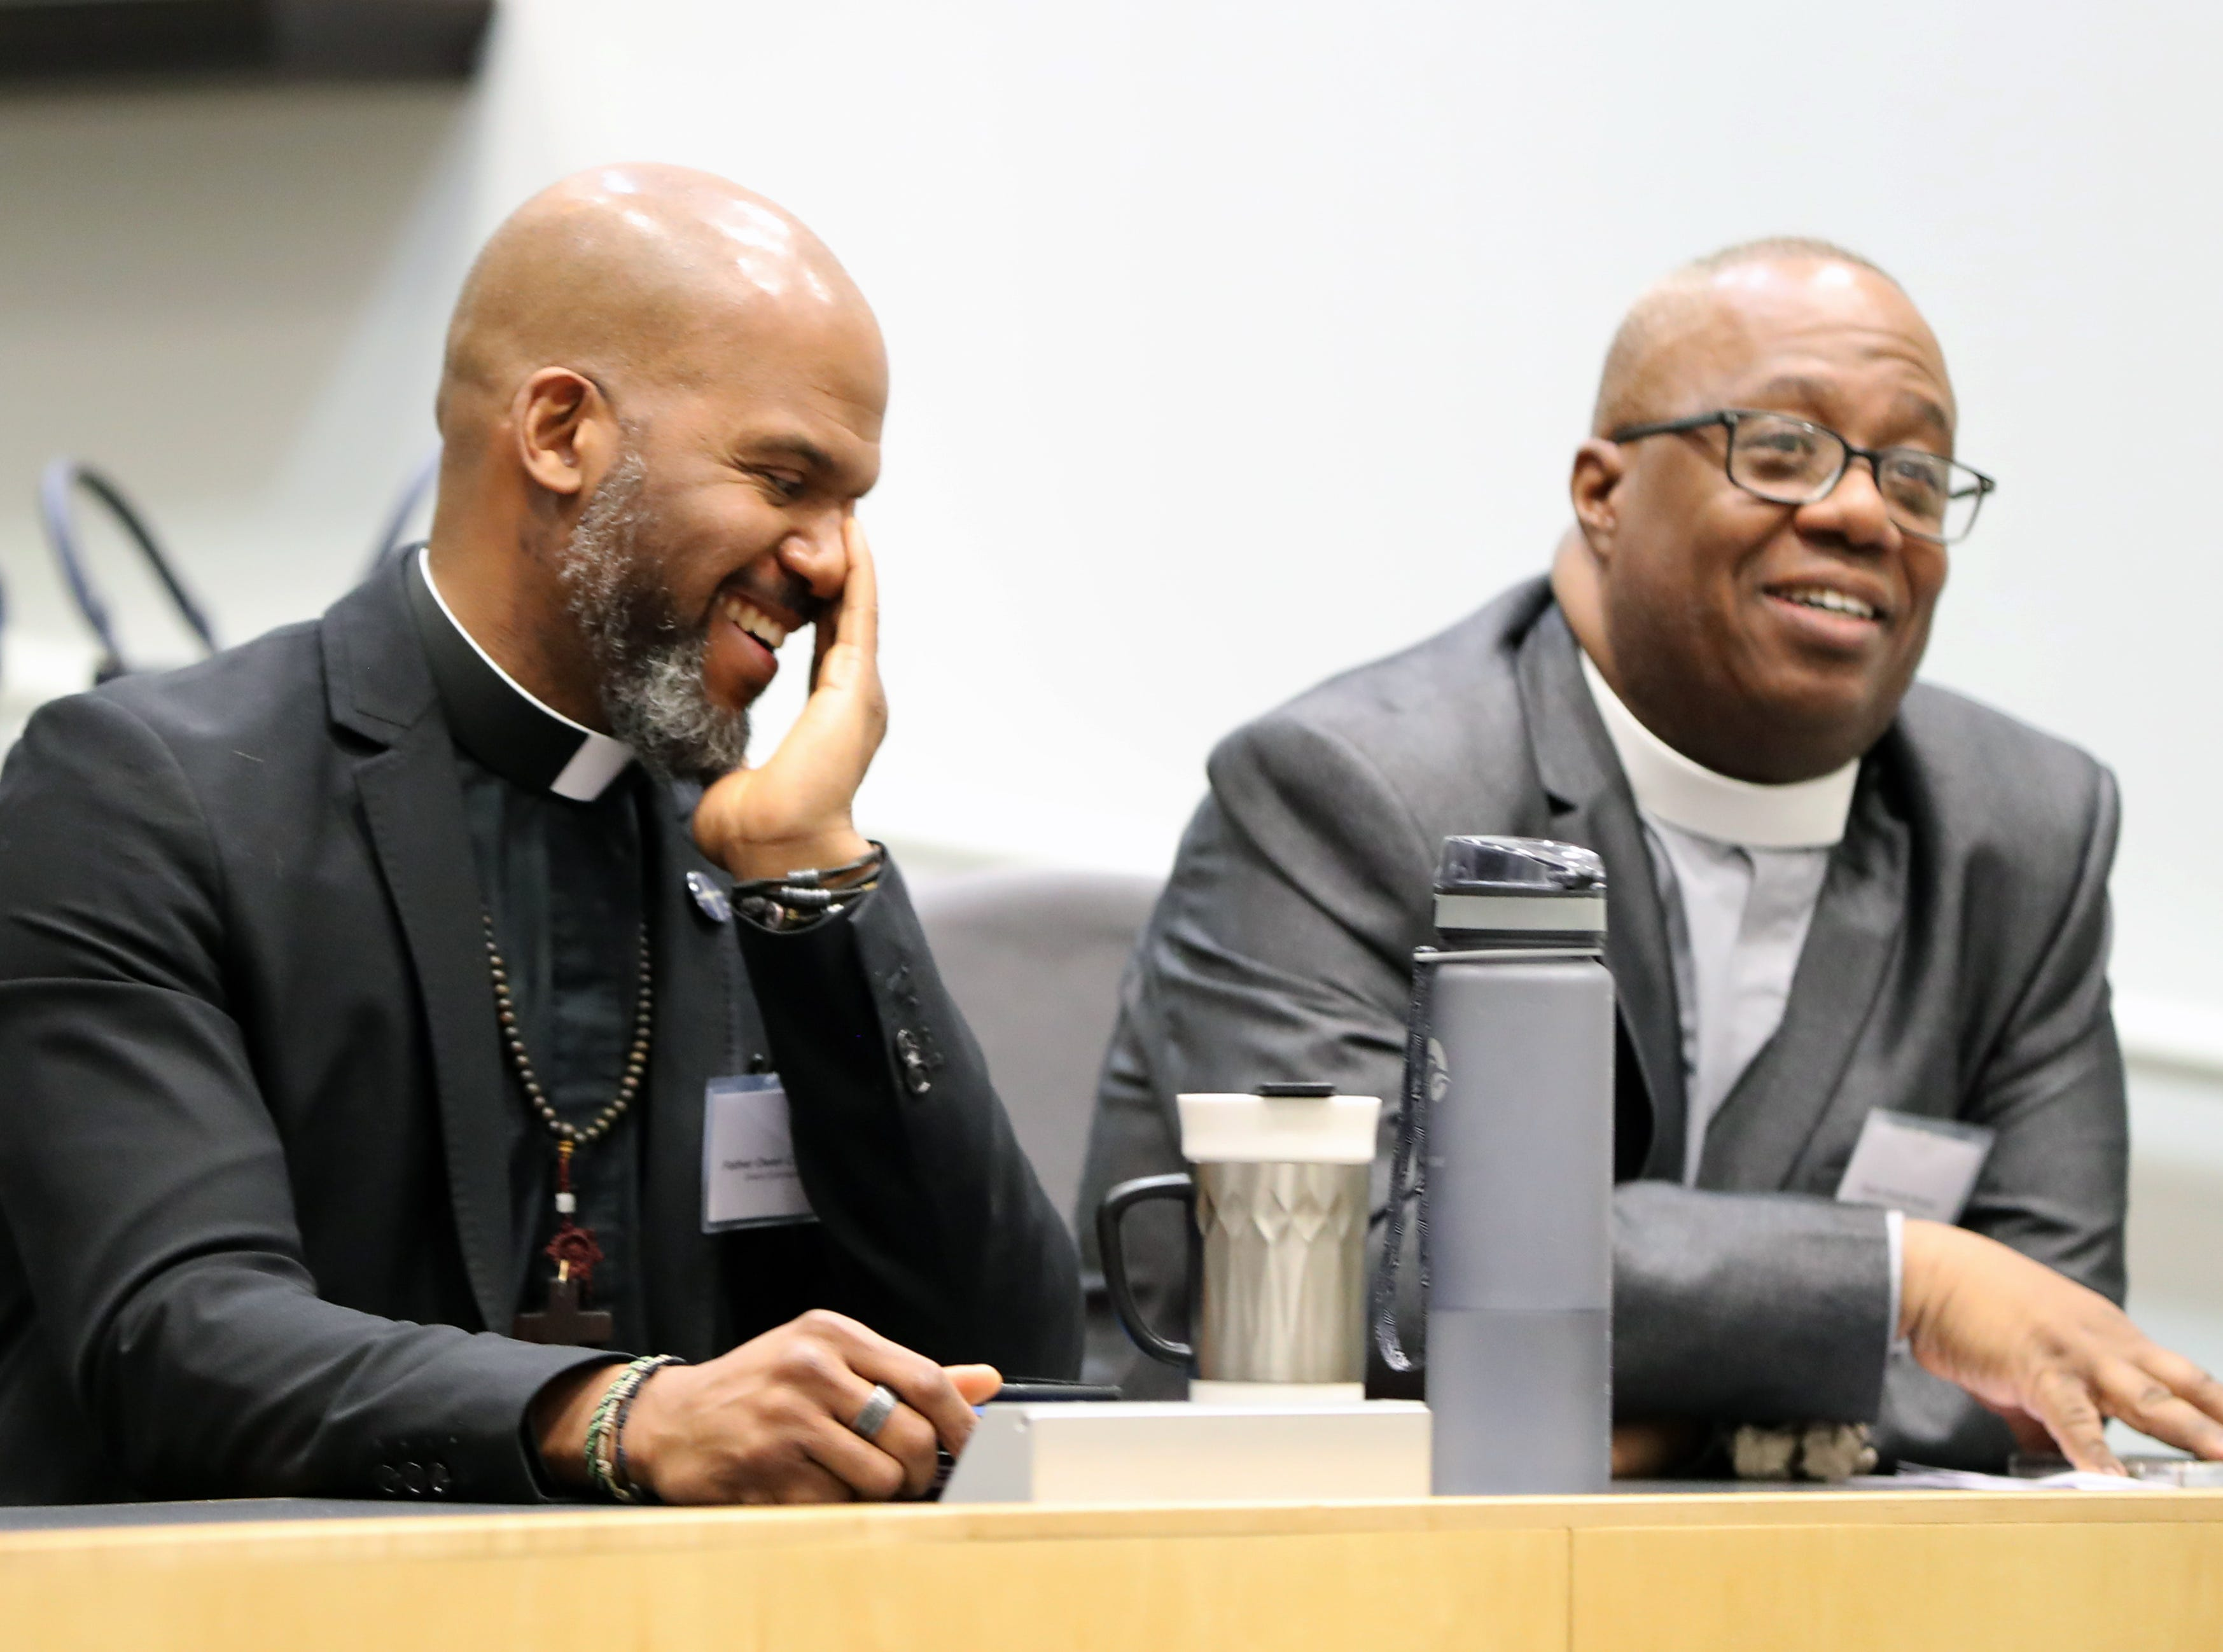 Fr. Owen Thompson, left, and Pastor Everett Newton during the Interfaith Symposium held at Rockland Community College March 20, 2019.